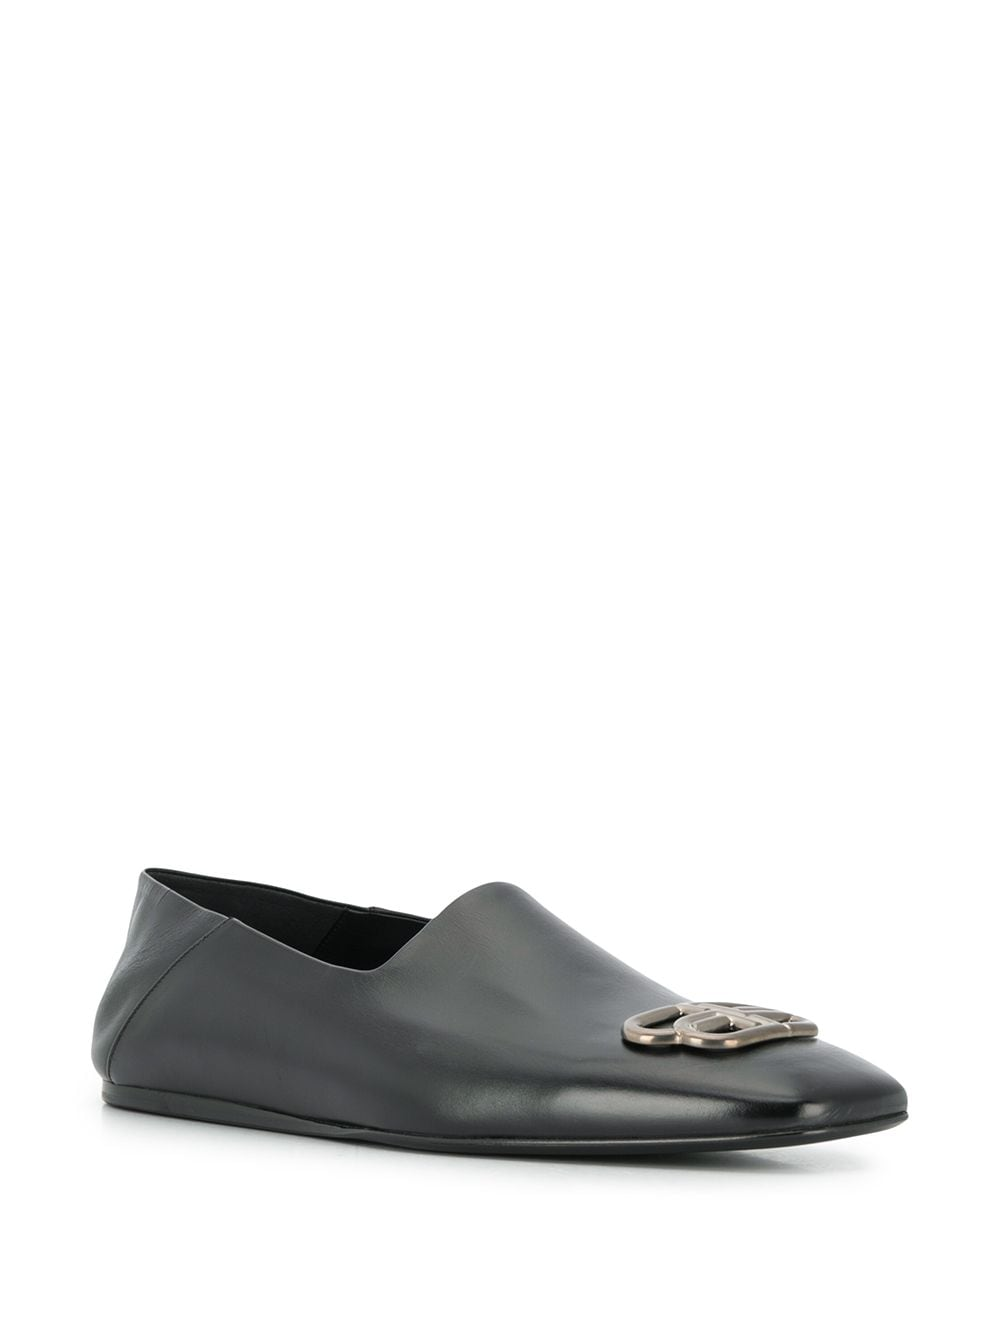 BALENCIAGA Cosy BB Loafers Black - Maison De Fashion